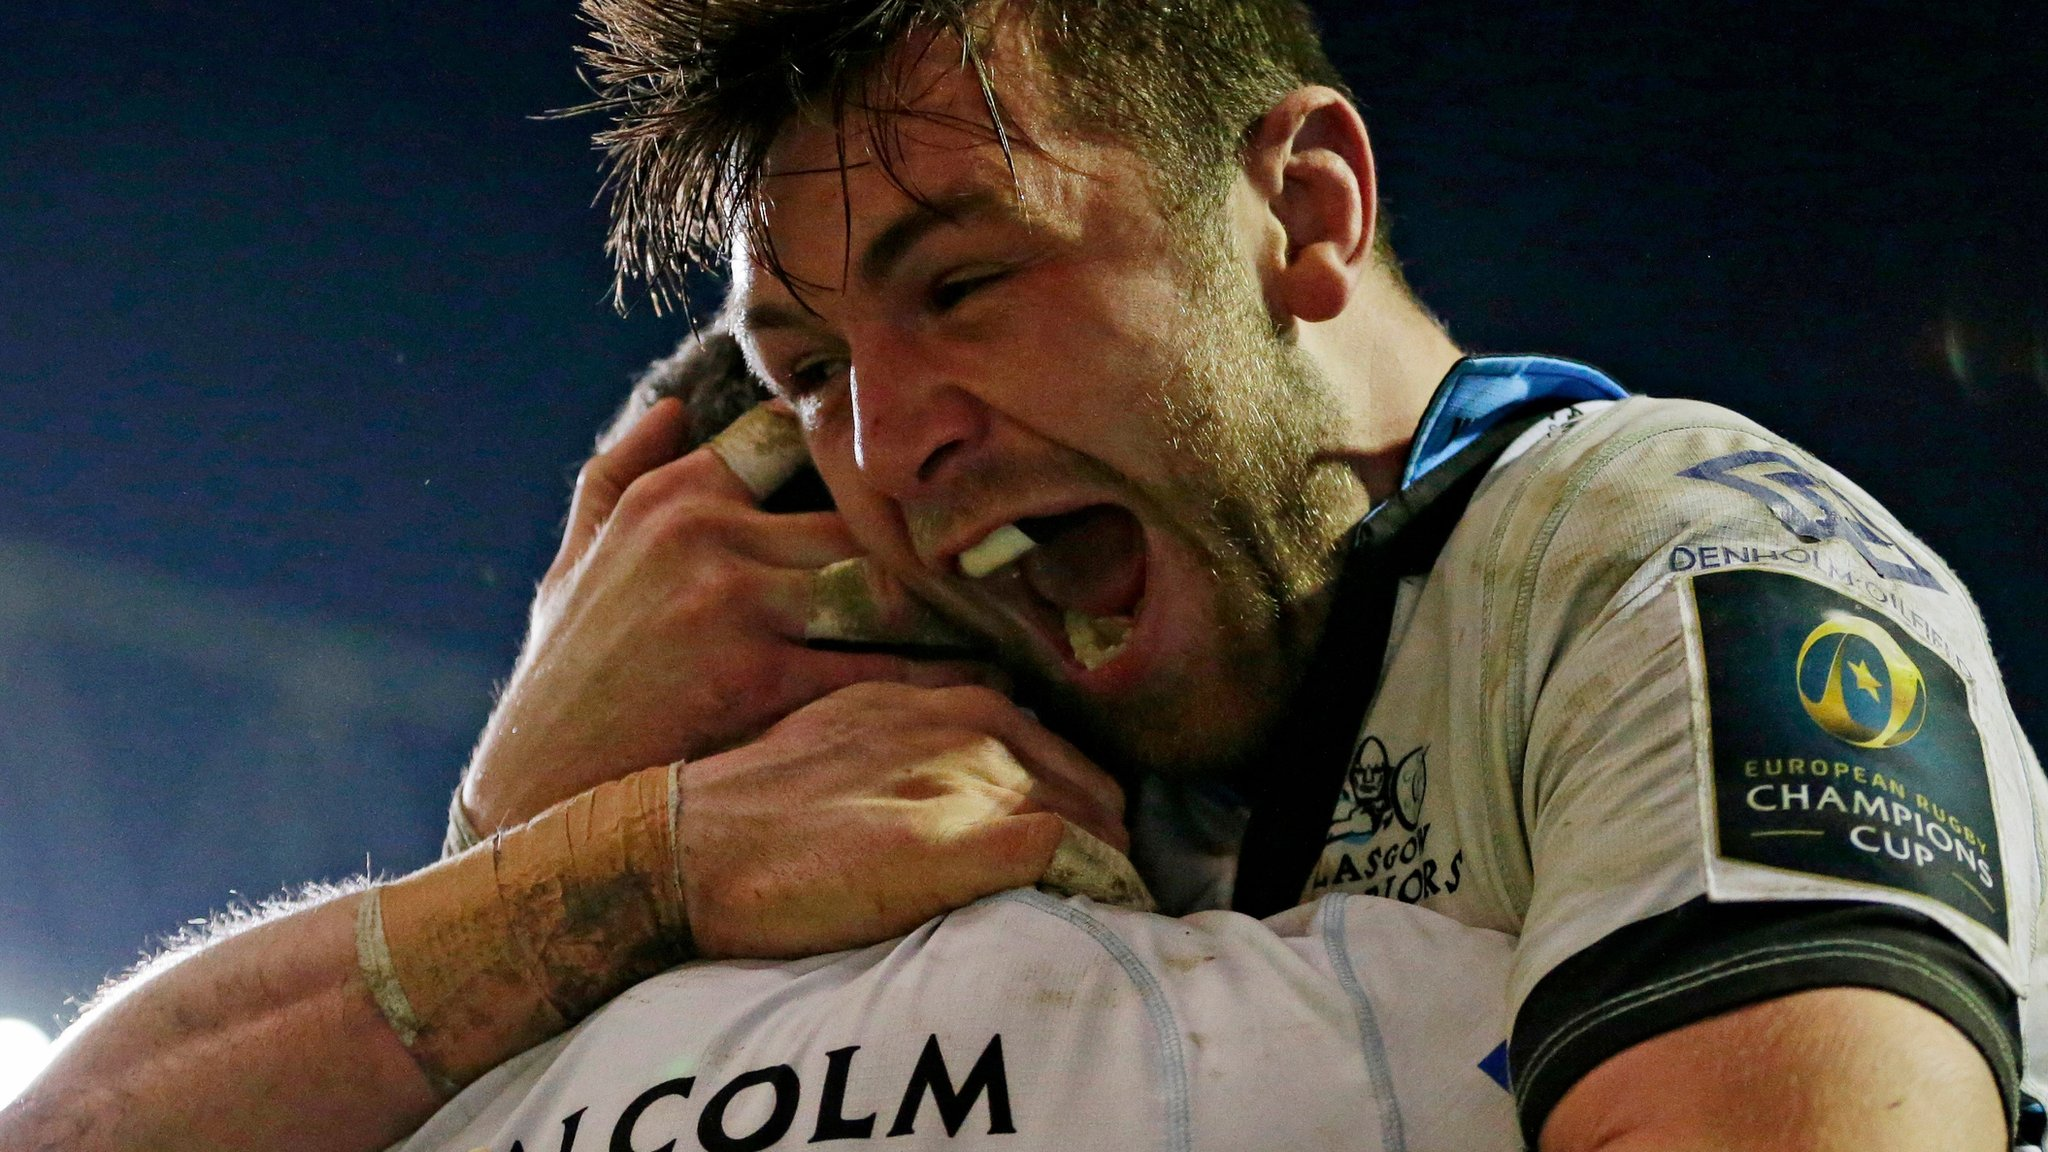 Saracens face Glasgow in Champions Cup quarter-finals